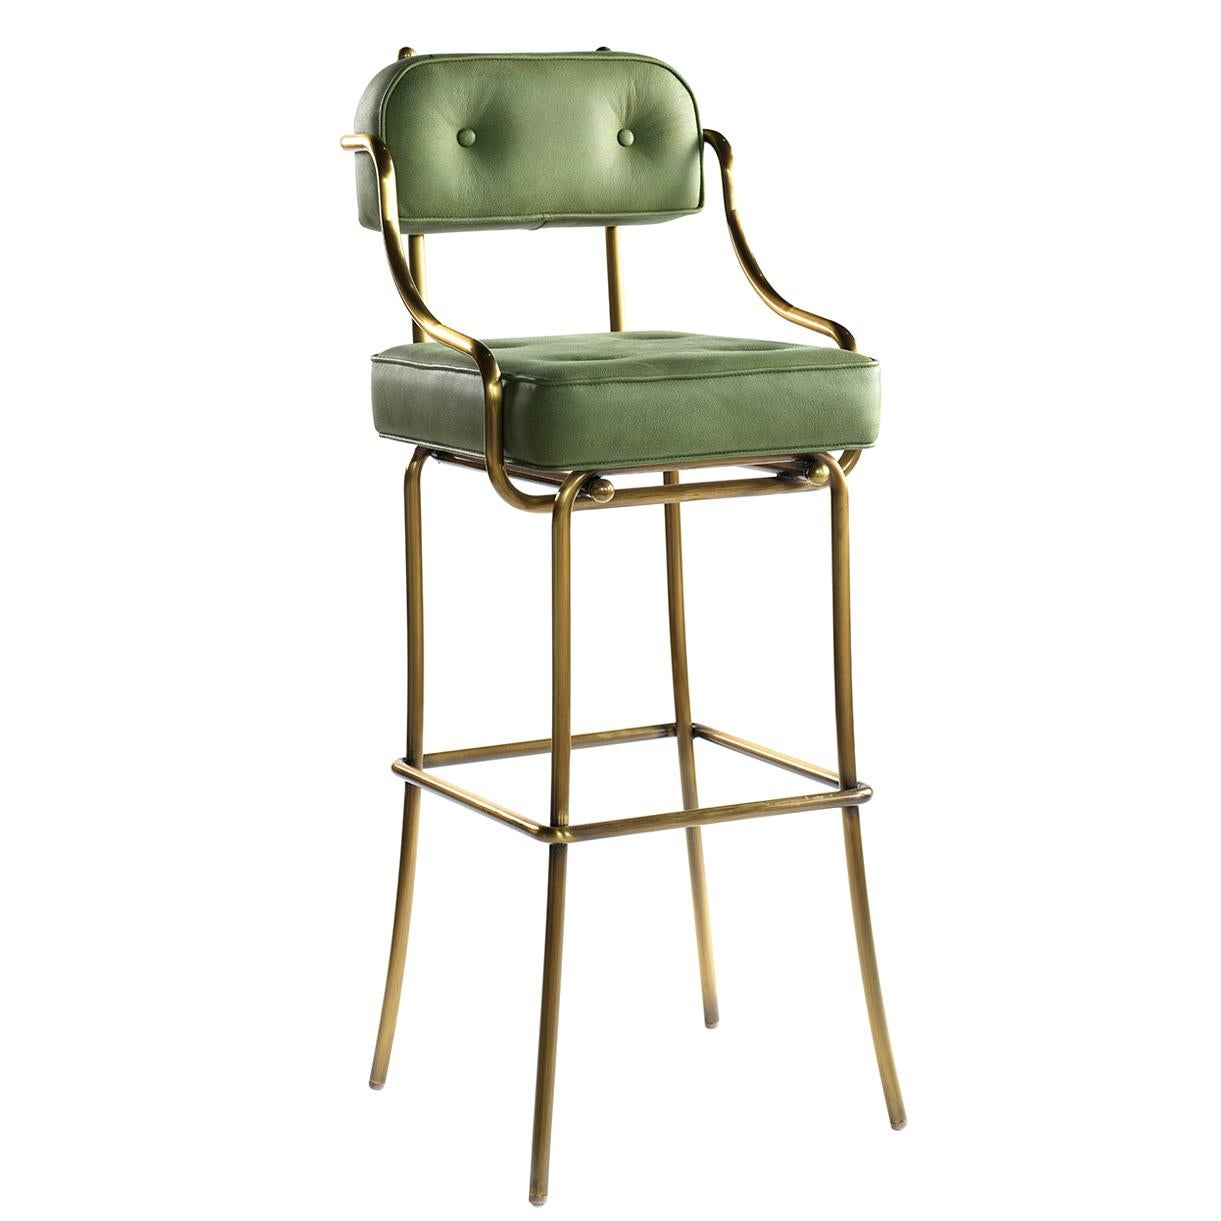 21st Century Leather Upholstered and Bronzed Frame Bar Stool, the Bar Chair